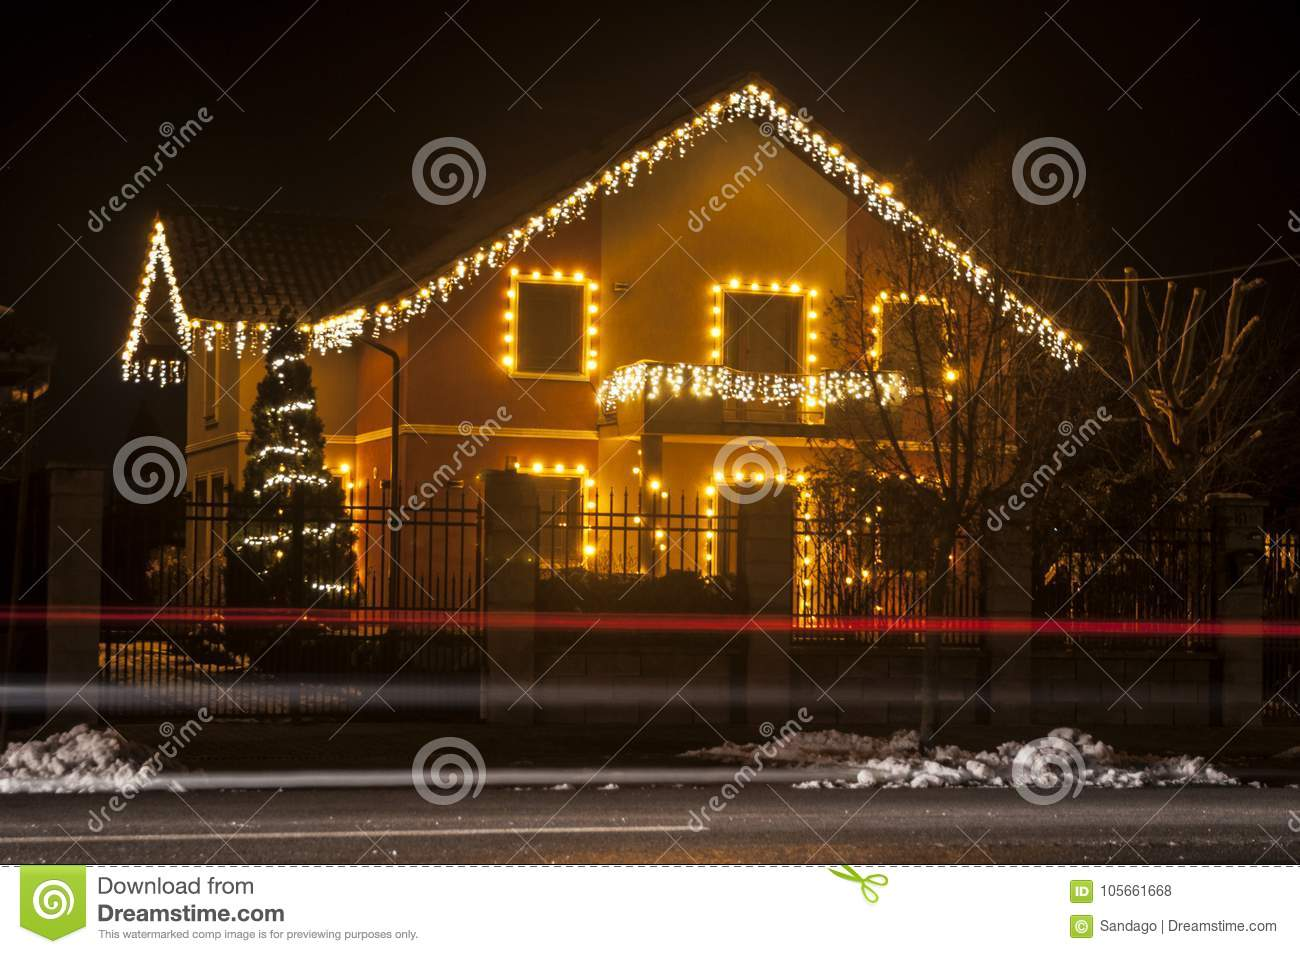 House With Christmas Lights.House With Christmas Lights Stock Photo Image Of December